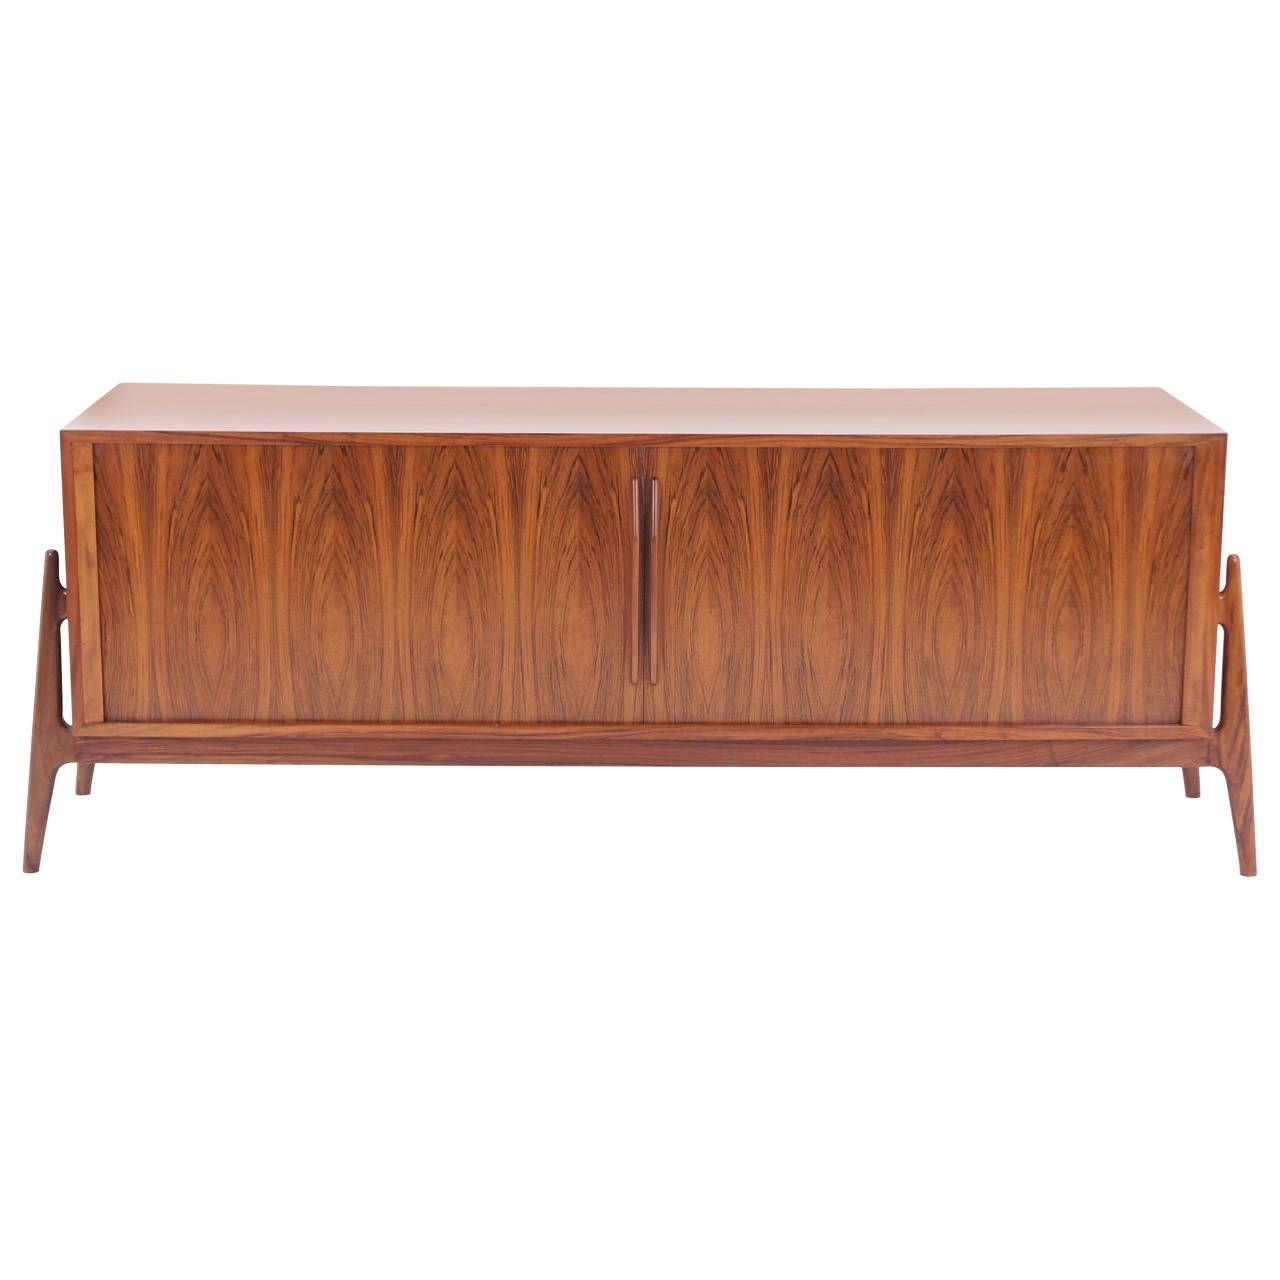 Massive Finn Juhl Attribution Rosewood Credenza | See more antique and modern Credenzas at http://www.1stdibs.com/furniture/storage-case-pieces/credenzas